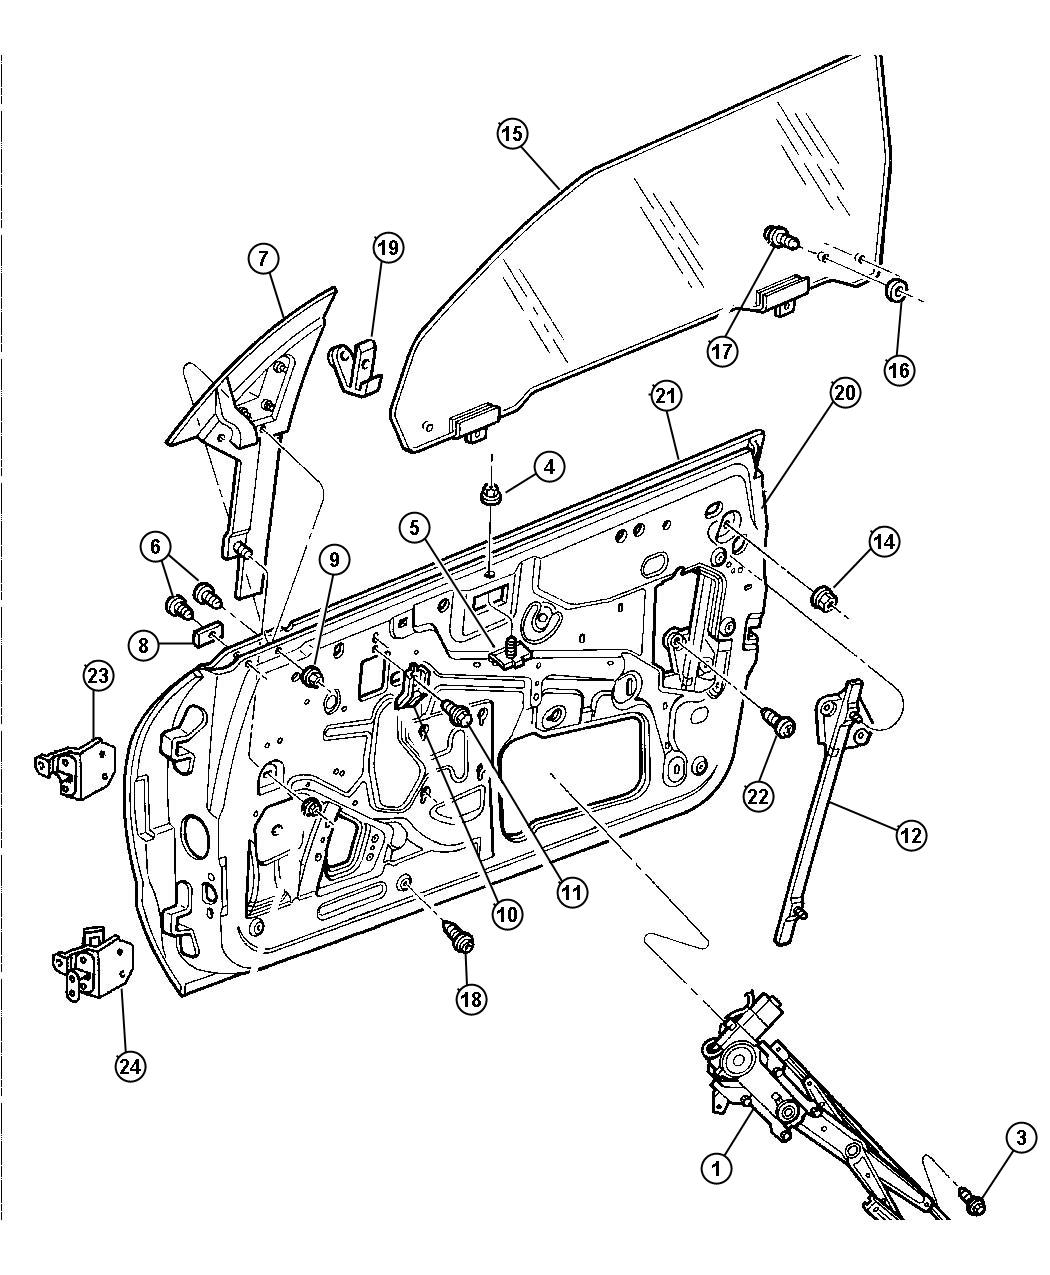 2013 Chrysler 200 Fuse Box Diagram Vehiclepad 2013 Chrysler Regarding 2004 Chrysler Pacifica Fuse Box together with 2001 Jetta Coolant Sensor Replace Diagram likewise Pt Cruiser Coolant Temp Sensor Location moreover 2006 Pt Cruiser Brake And Tail Lights as well Ford E Series E 450 1995 Fuse Box Diagram. on pt cruiser fuse diagram